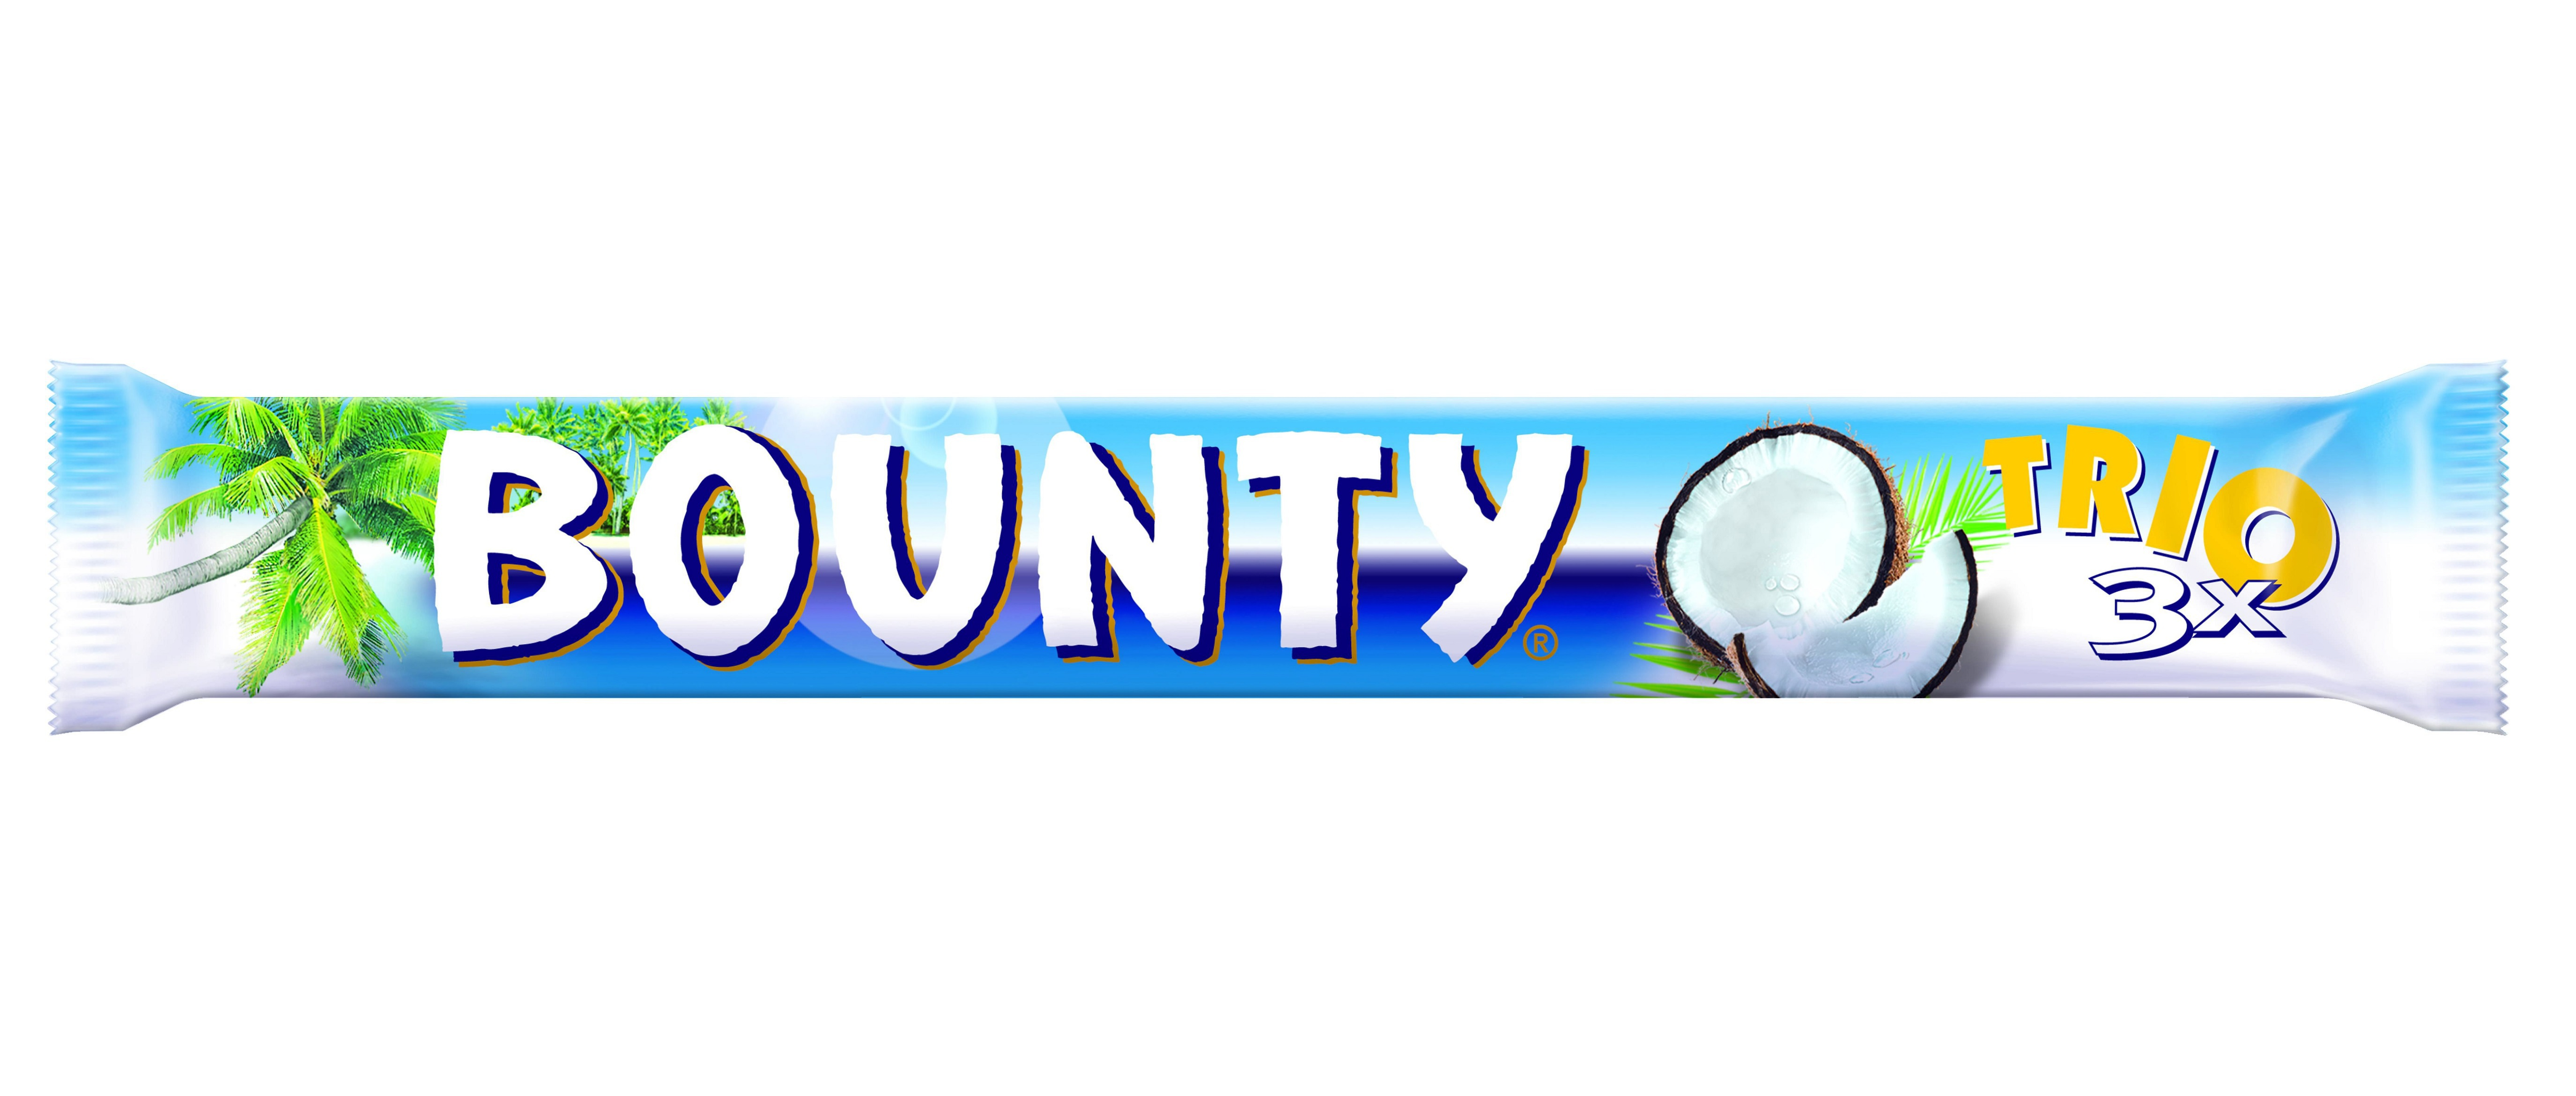 Bounty Images